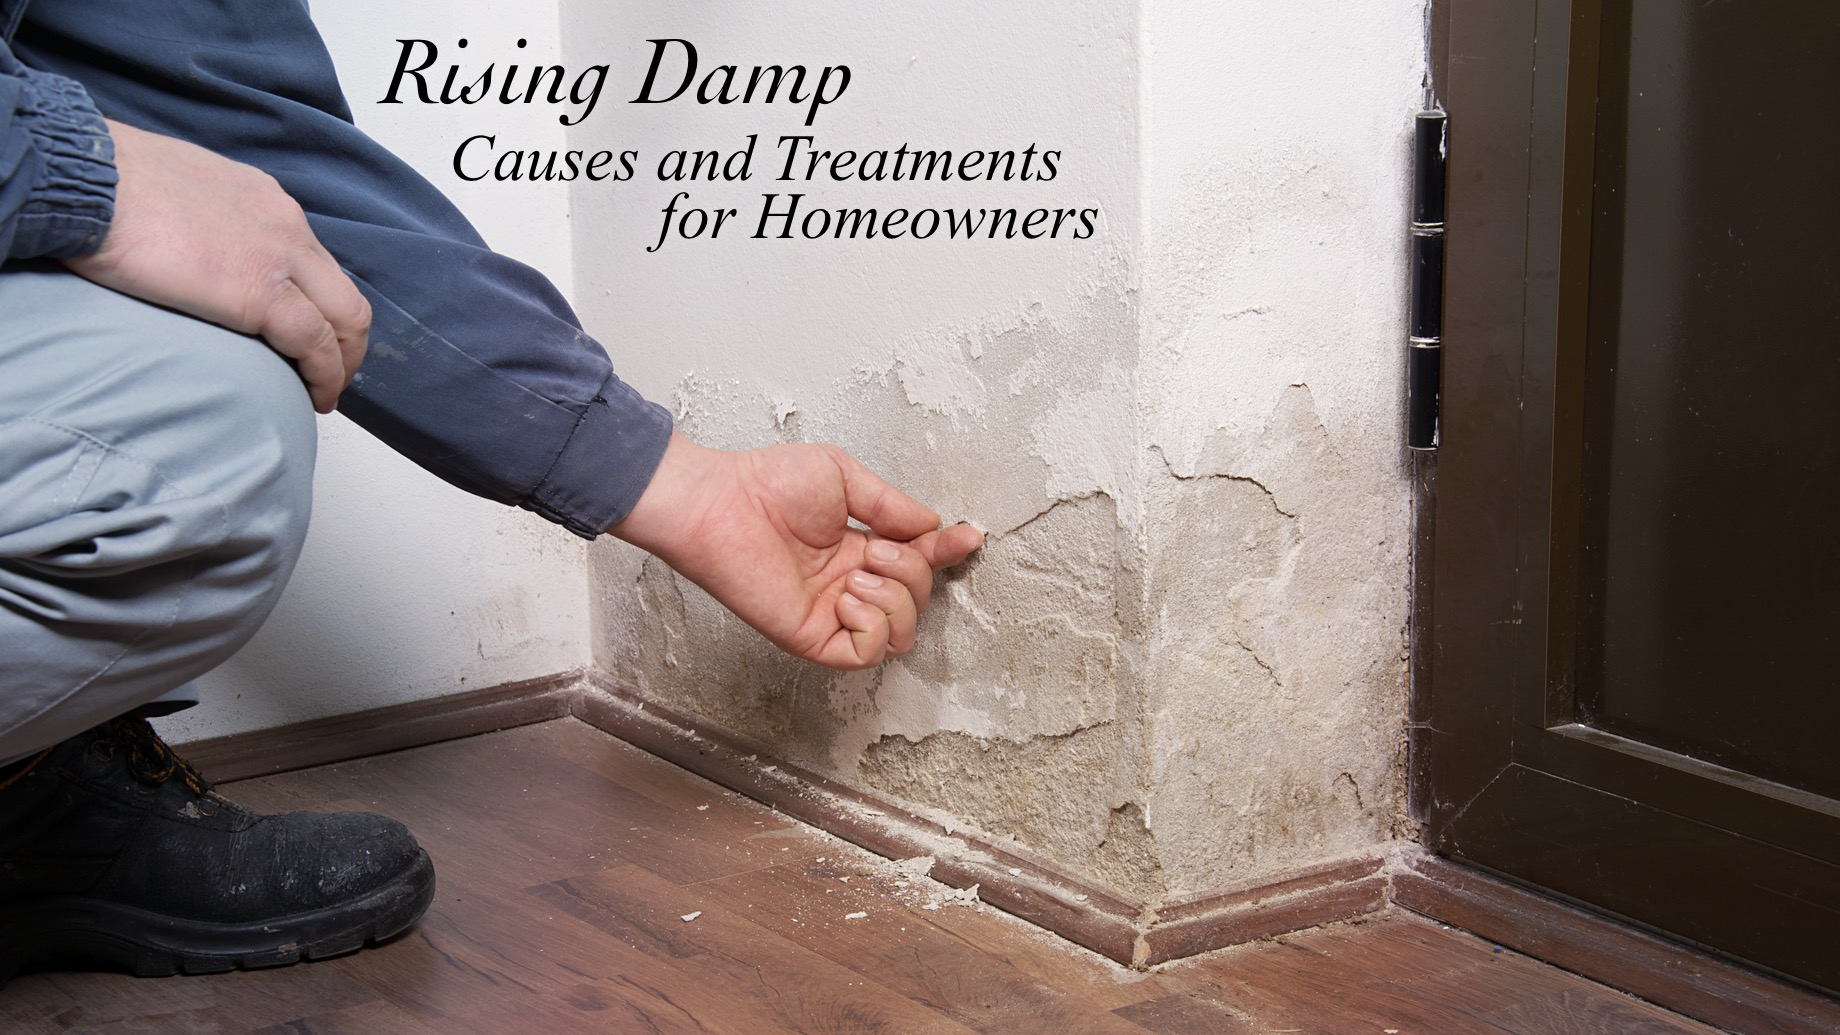 Rising Damp - Causes and Treatments for Homeowners